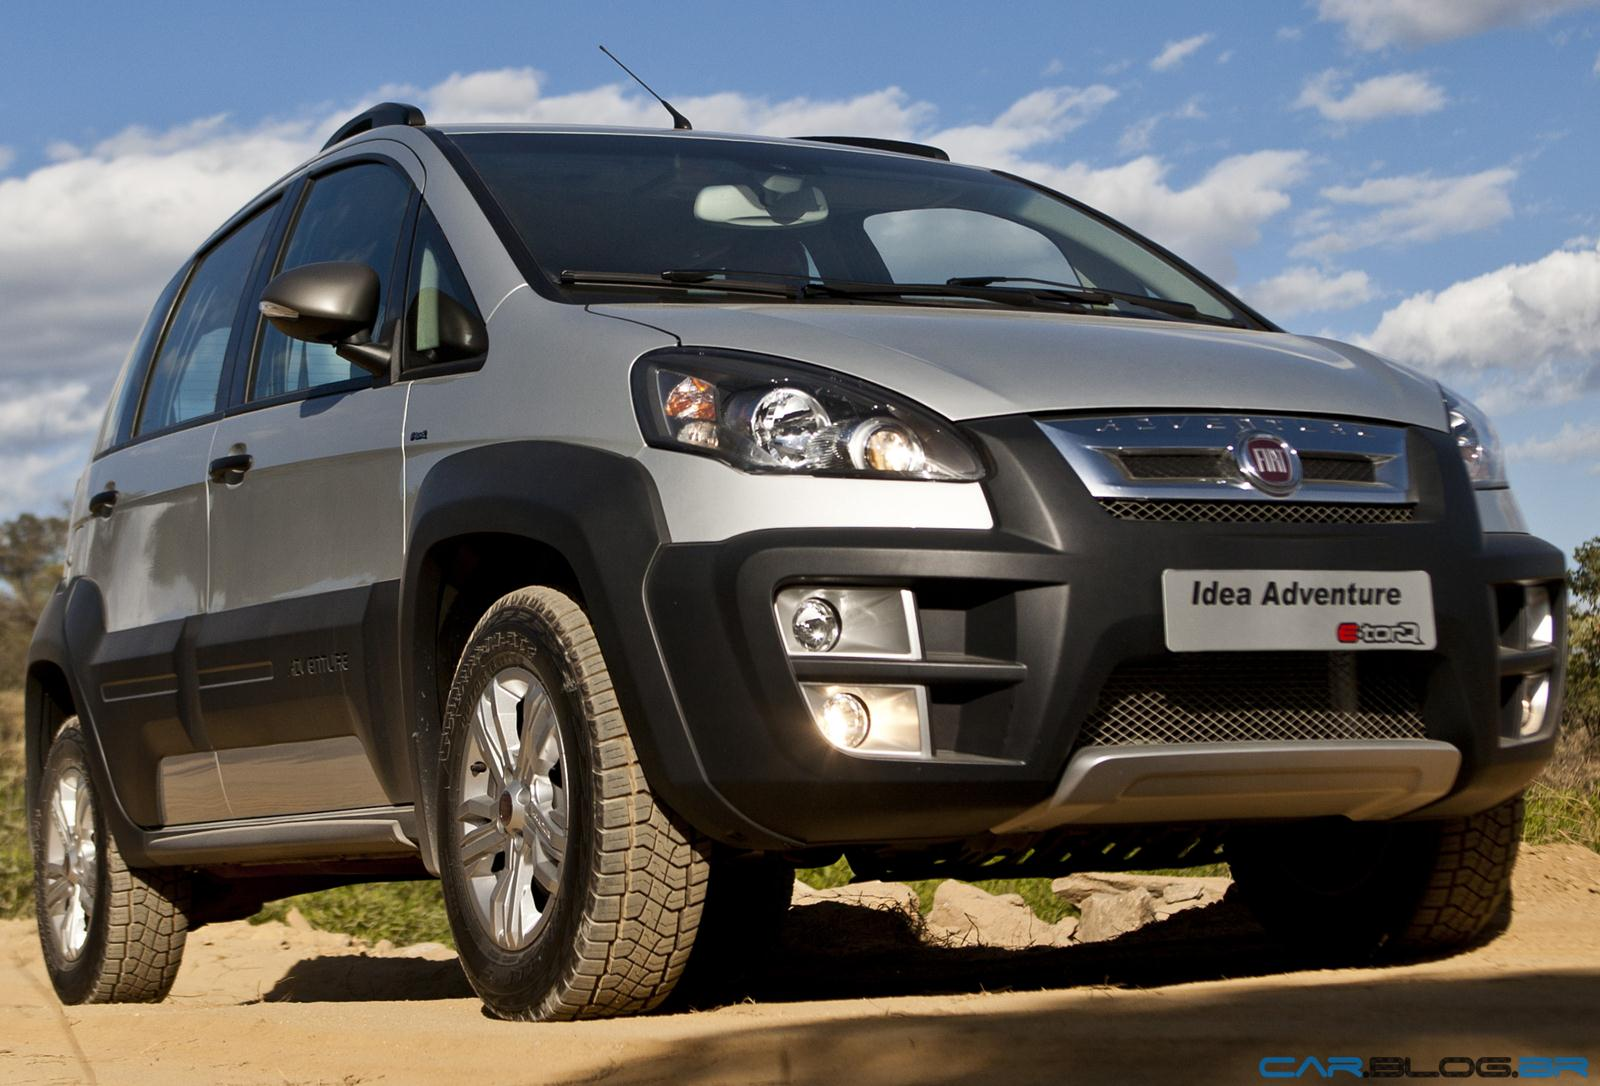 Fiat idea 2013 fotos pre o e especifica es t cnicas for Paragolpe delantero fiat idea adventure